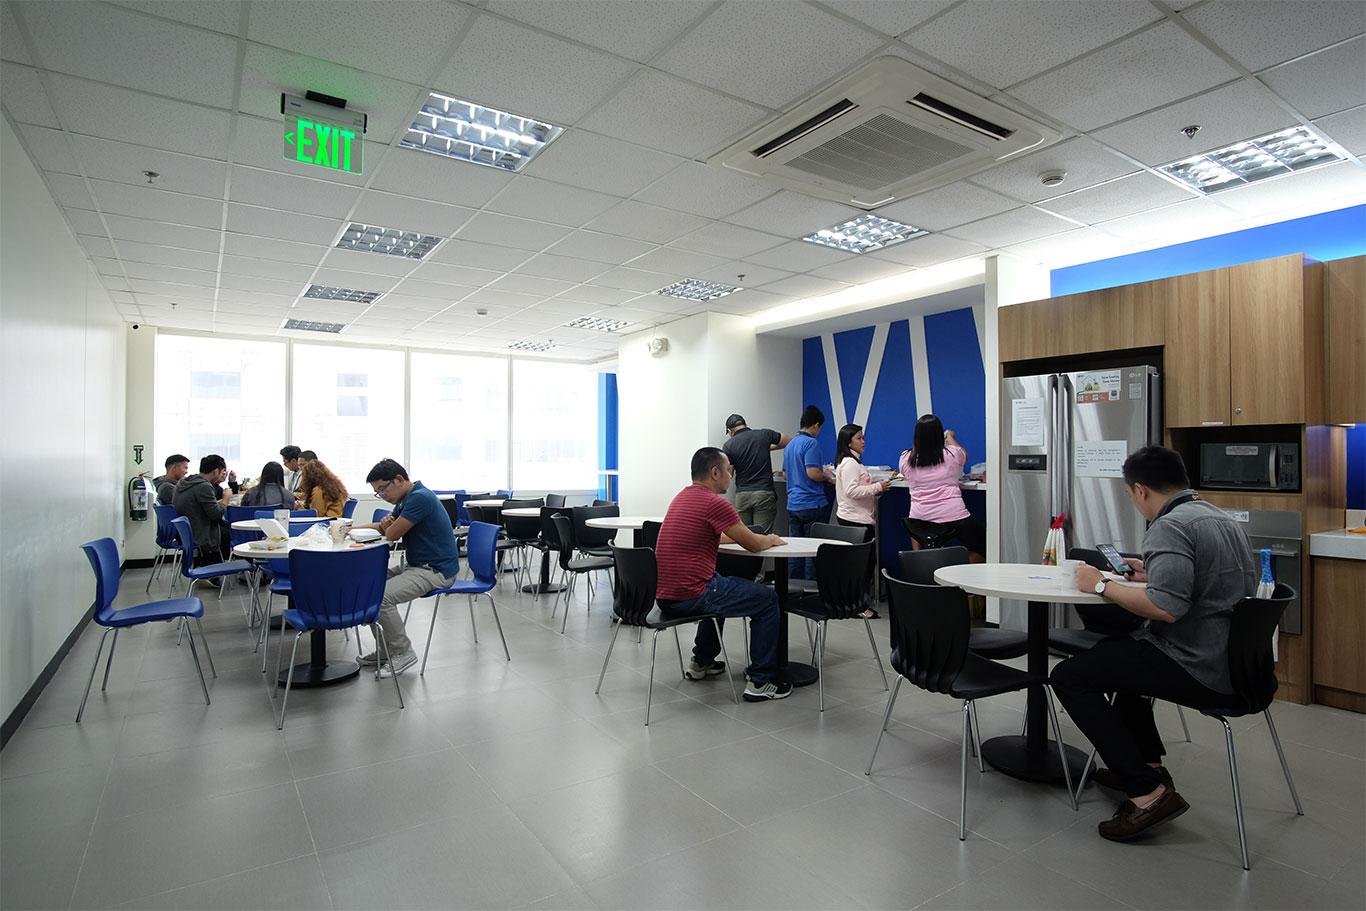 KMC Serviced Office for rent in BGC, SM Aura Facility Pantry Area - EpicSpace